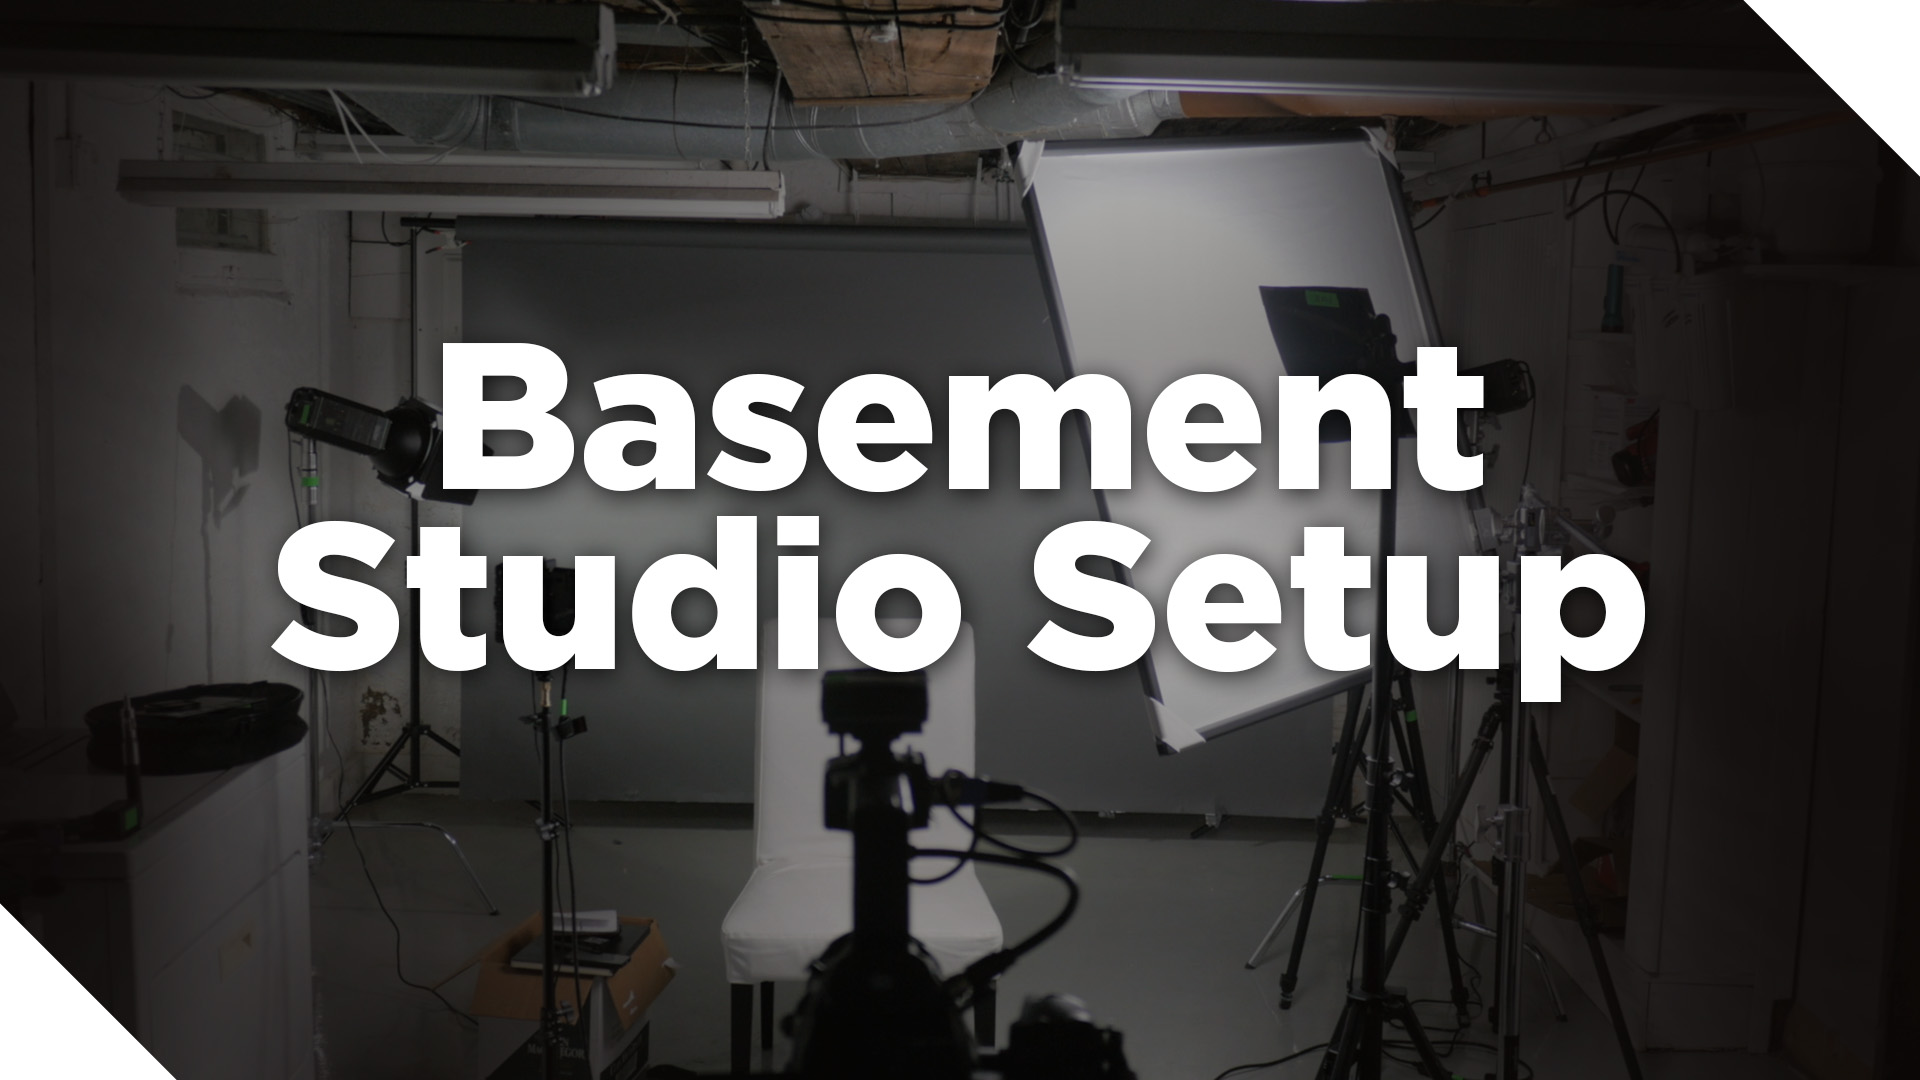 The Studio Part 5: Setting Up a Basement Video Studio